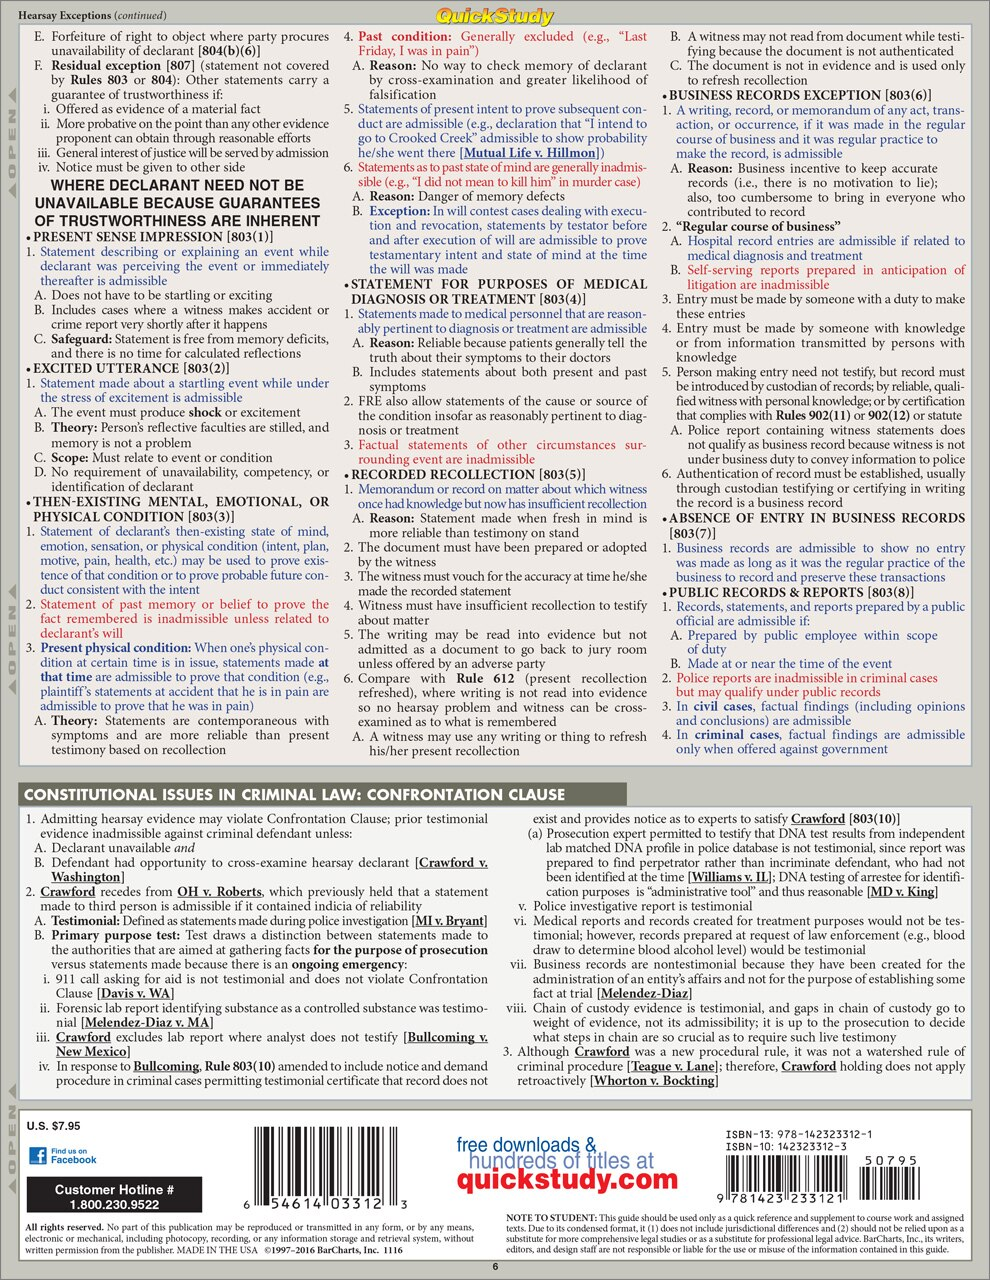 QuickStudy Quick Study Evidence Laminated Reference Guide BarCharts Publishing Legal Study Guide Back Image